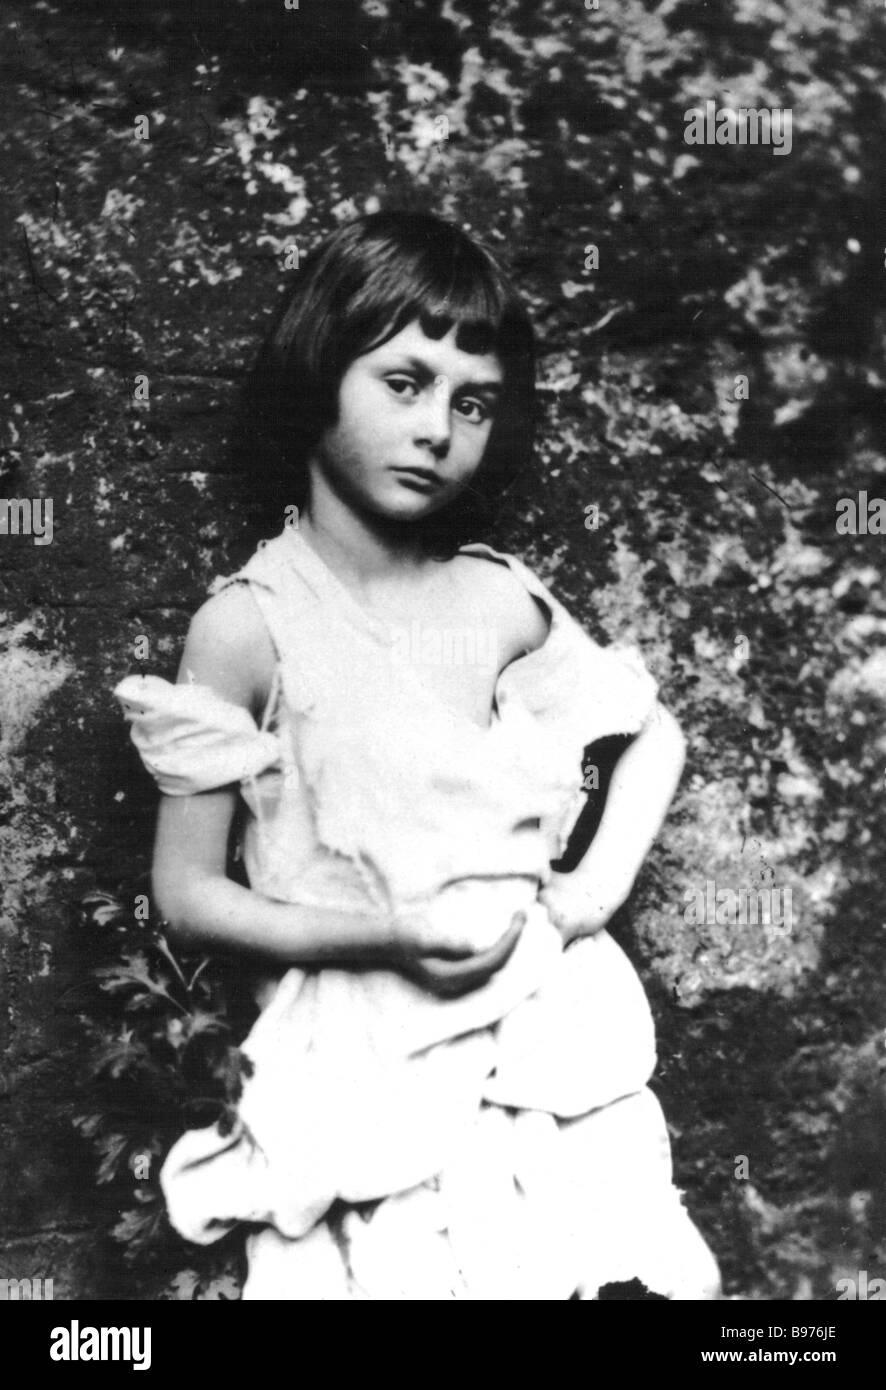 ALICE LIDDELL  photographed by Lewis Carroll aged 10 in 1858 and the inspiration for the Alice character in his - Stock Image